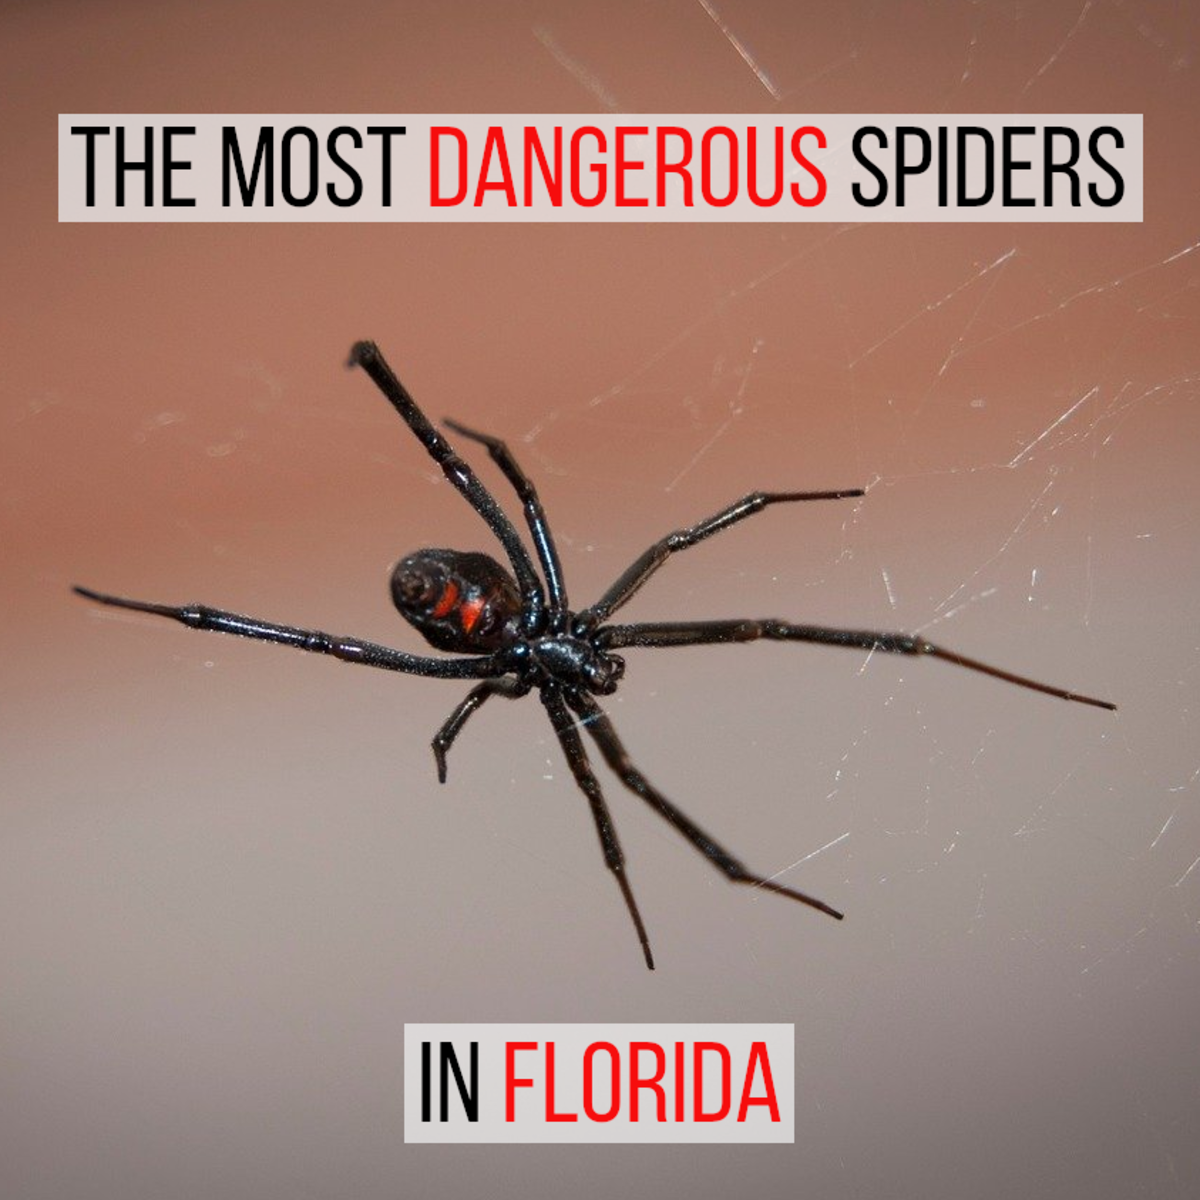 There are two spiders that are potentially harmful if you live in or visit Florida, this article looks at them in detail.